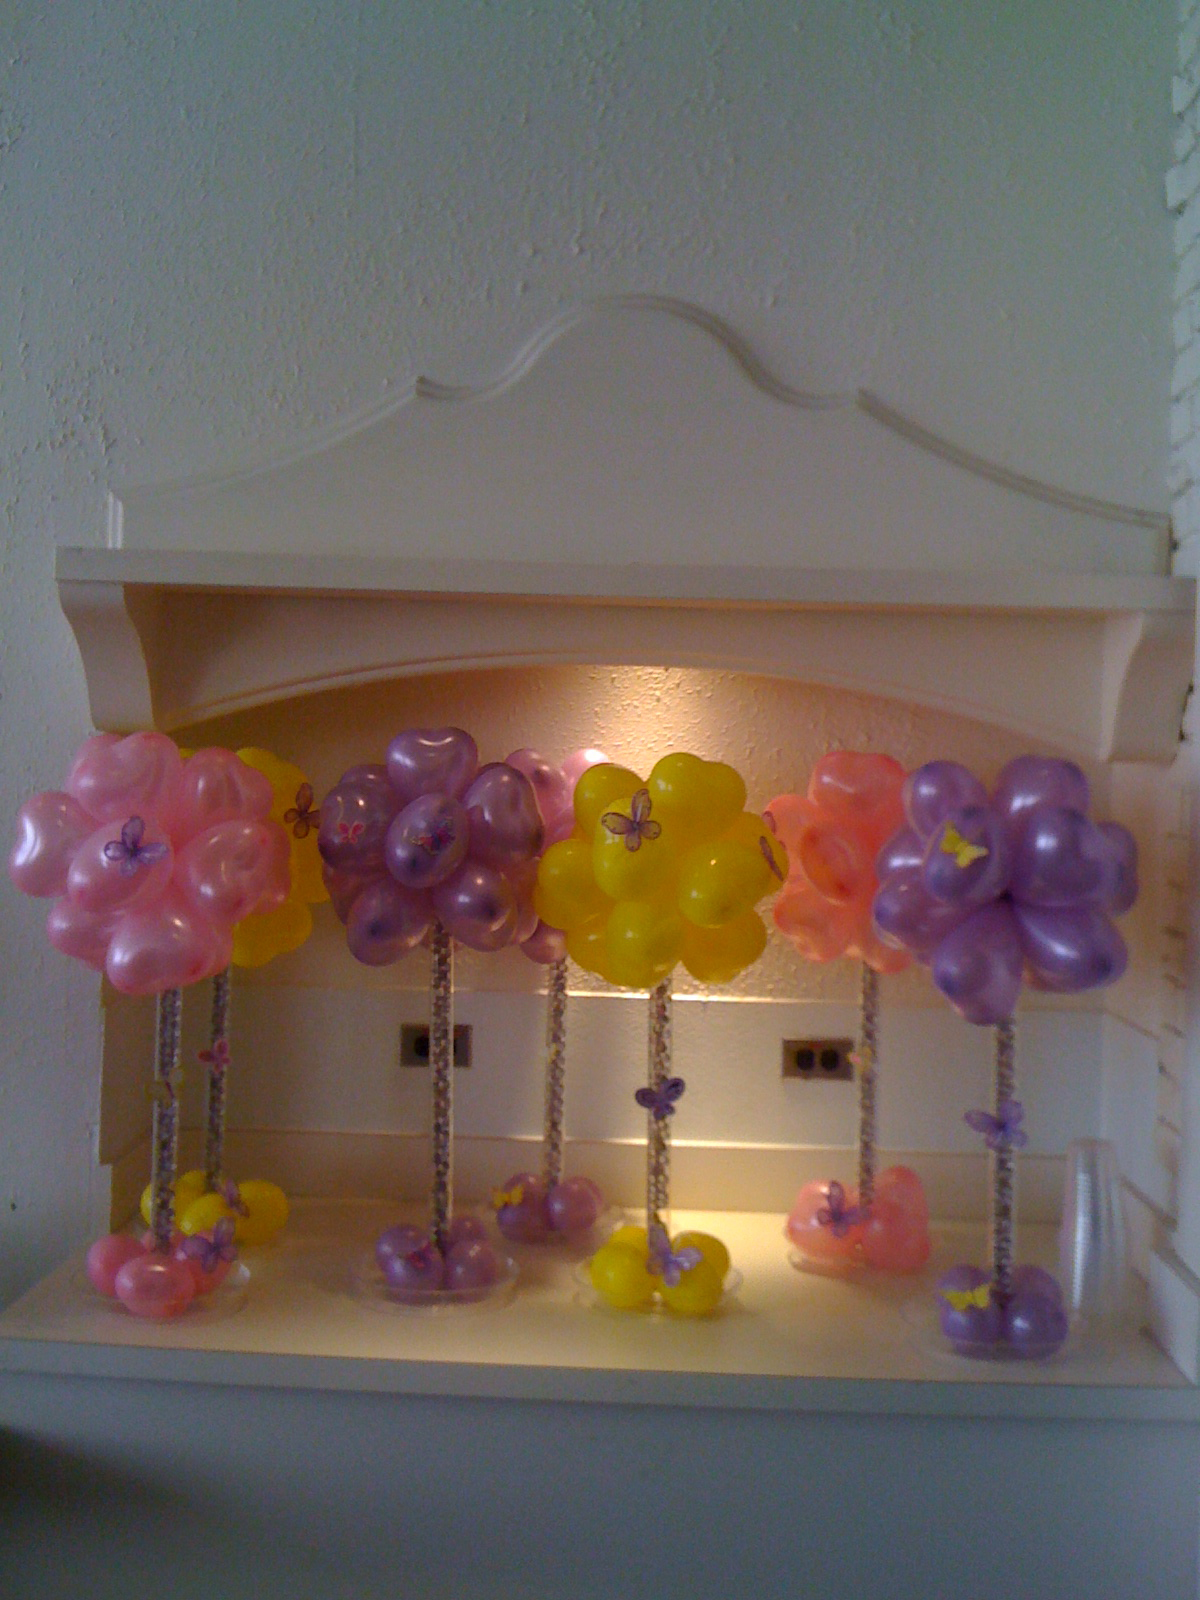 Images of heaven events balloons centerpieces